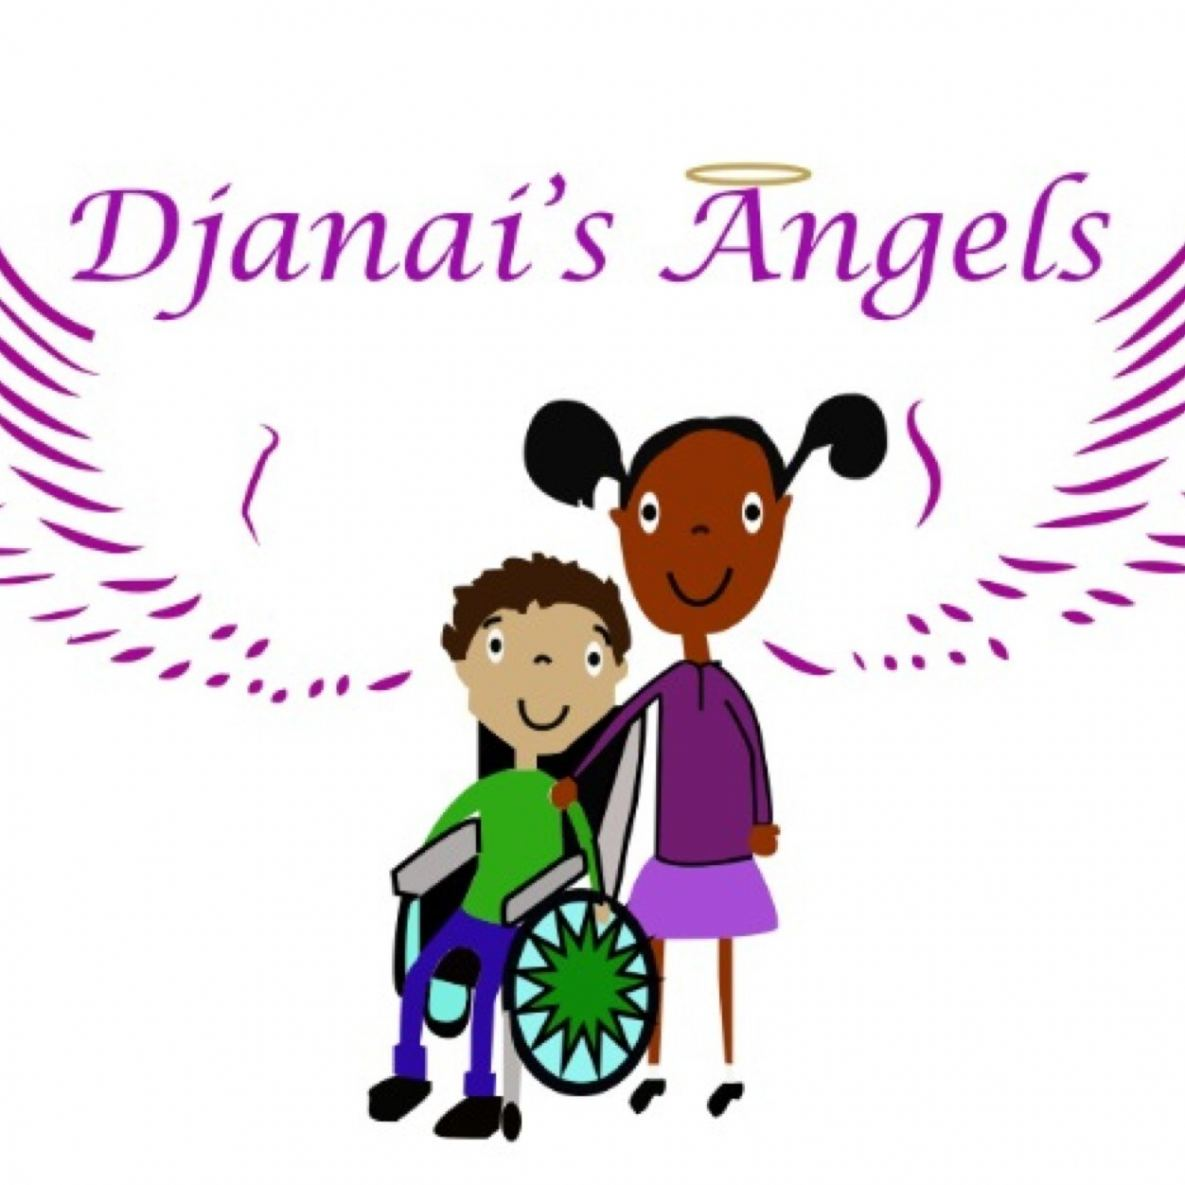 Djanai Angels.